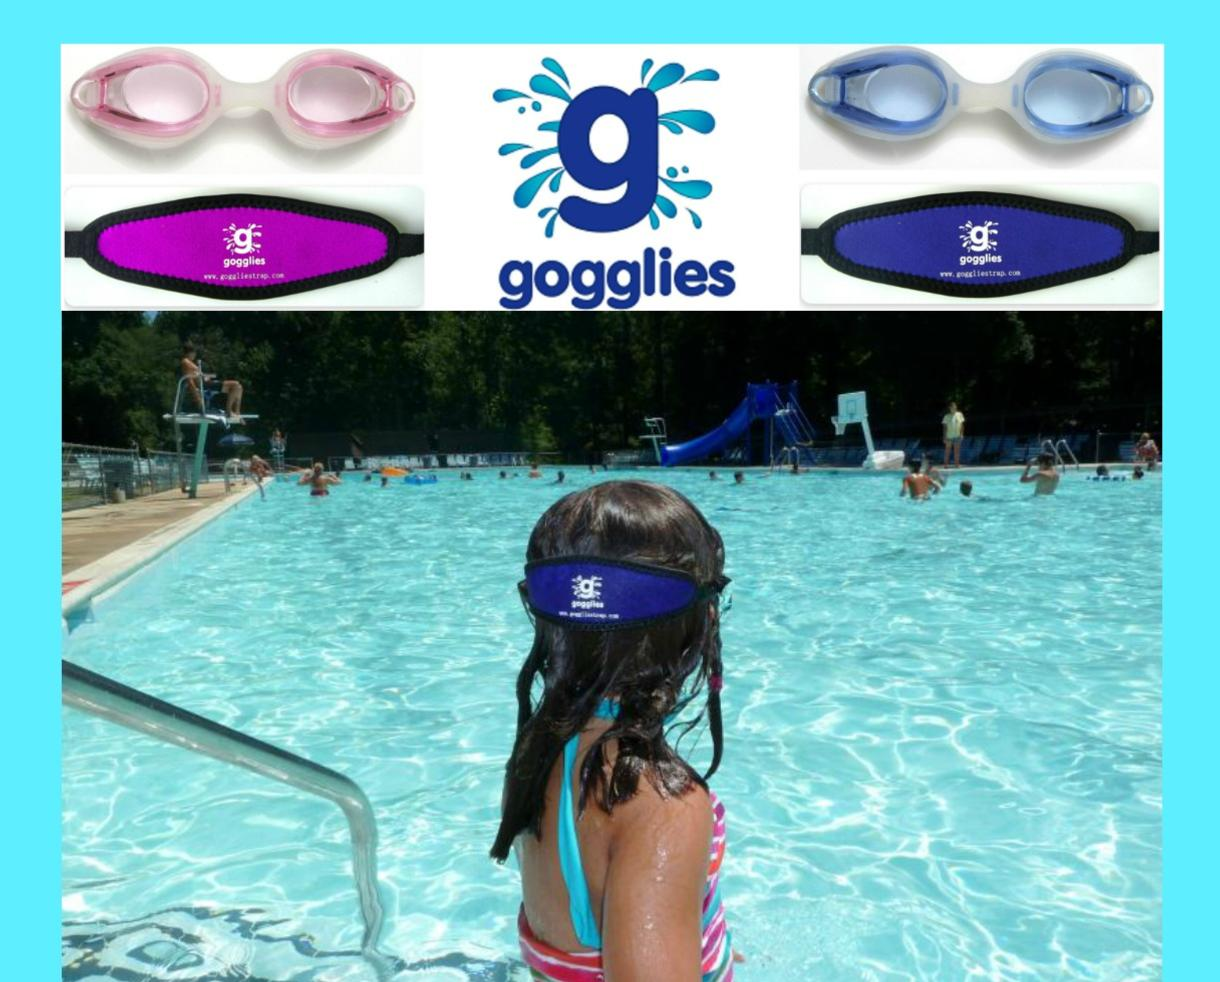 $15 for TWO Pairs of Gogglies - Comfortable Swim Goggles with Soft Strap - Includes Shipping! (61% Off)